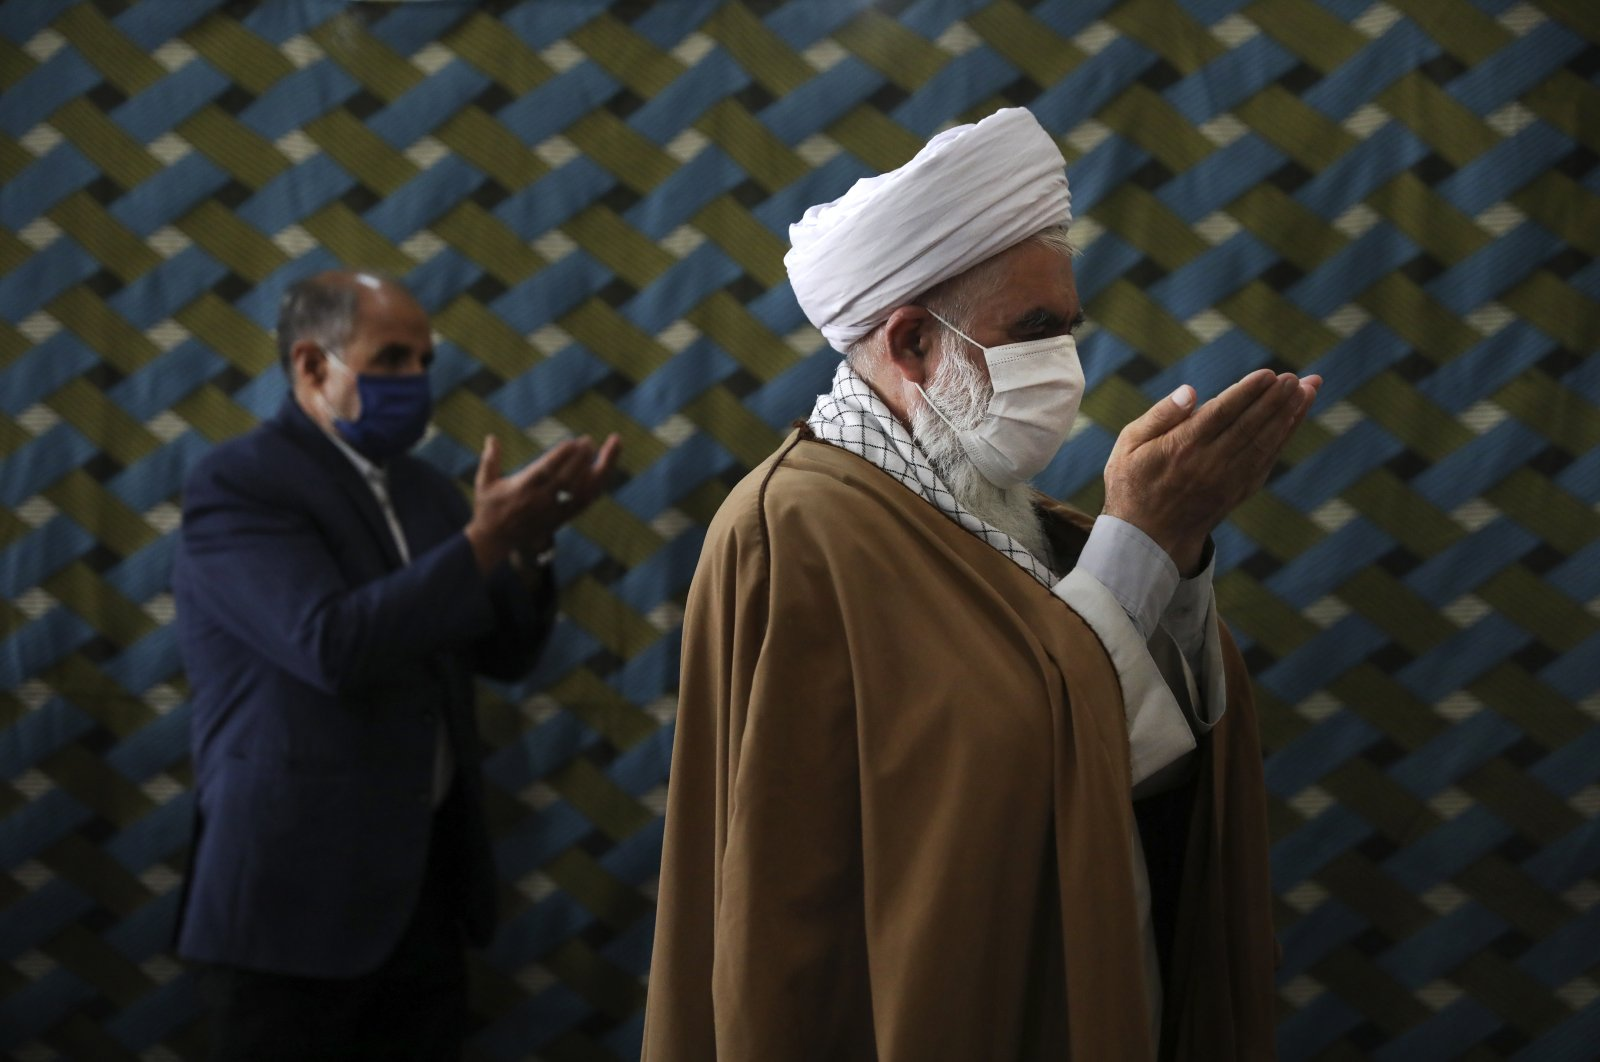 A cleric wearing a protective face mask to help prevent the spread of the coronavirus, leads the noon prayer at a mosque in the the city of Zanjan, some 330 kilometers west of capital Tehran, Iran, July 5, 2020. (AP Photo)